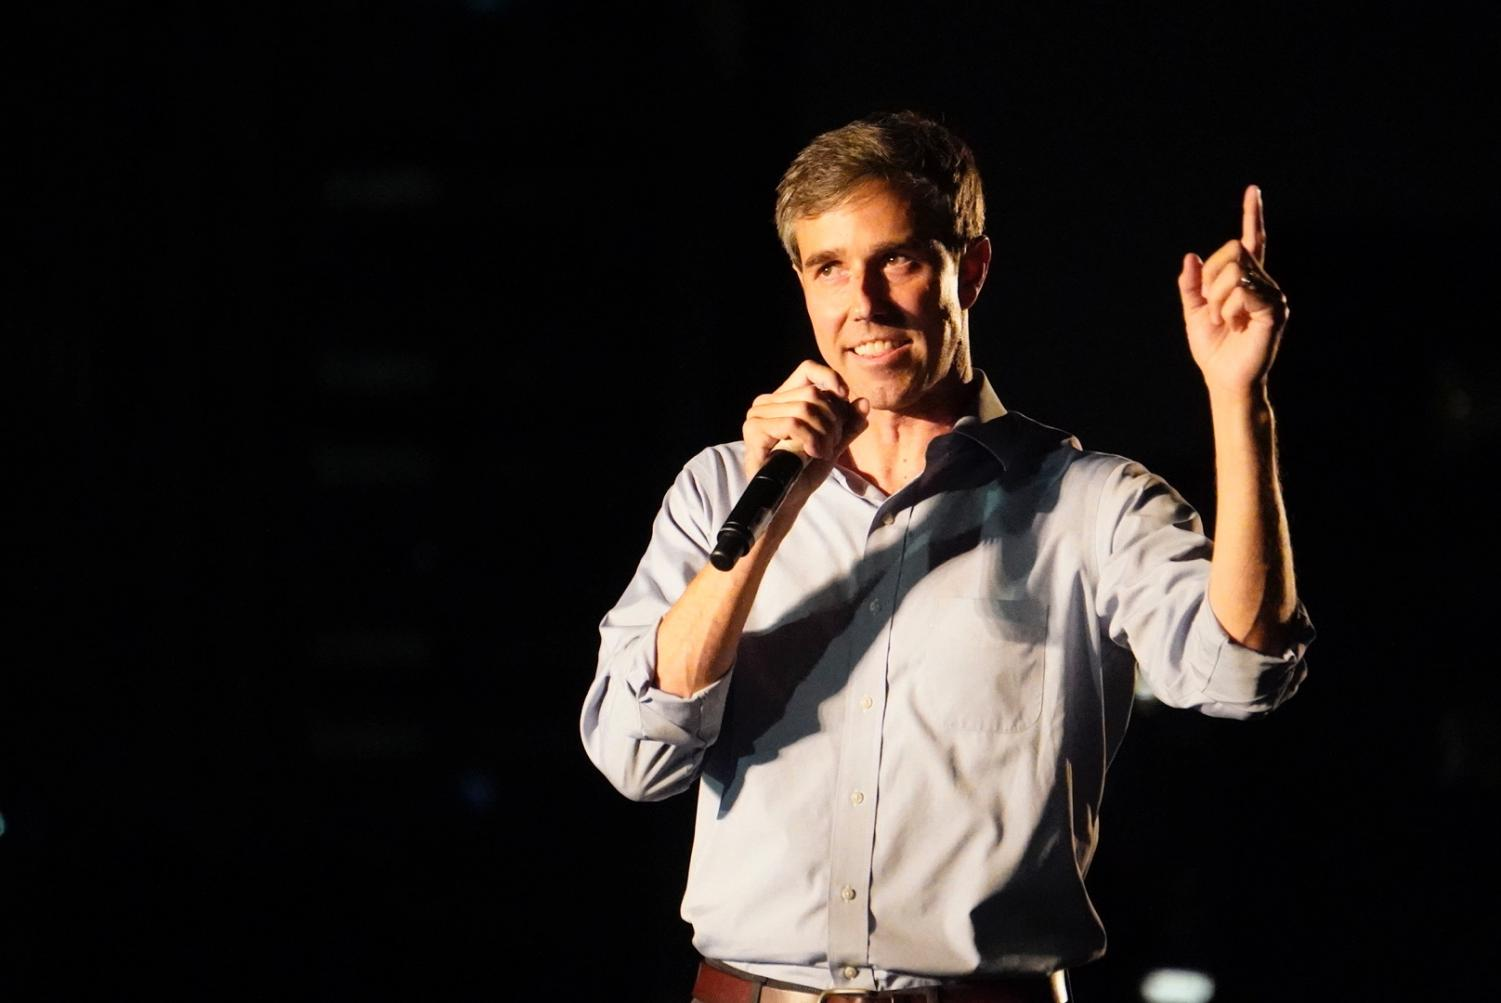 Beto O'Rourke speaks to thousands in Austin on Sept. 29 2018.